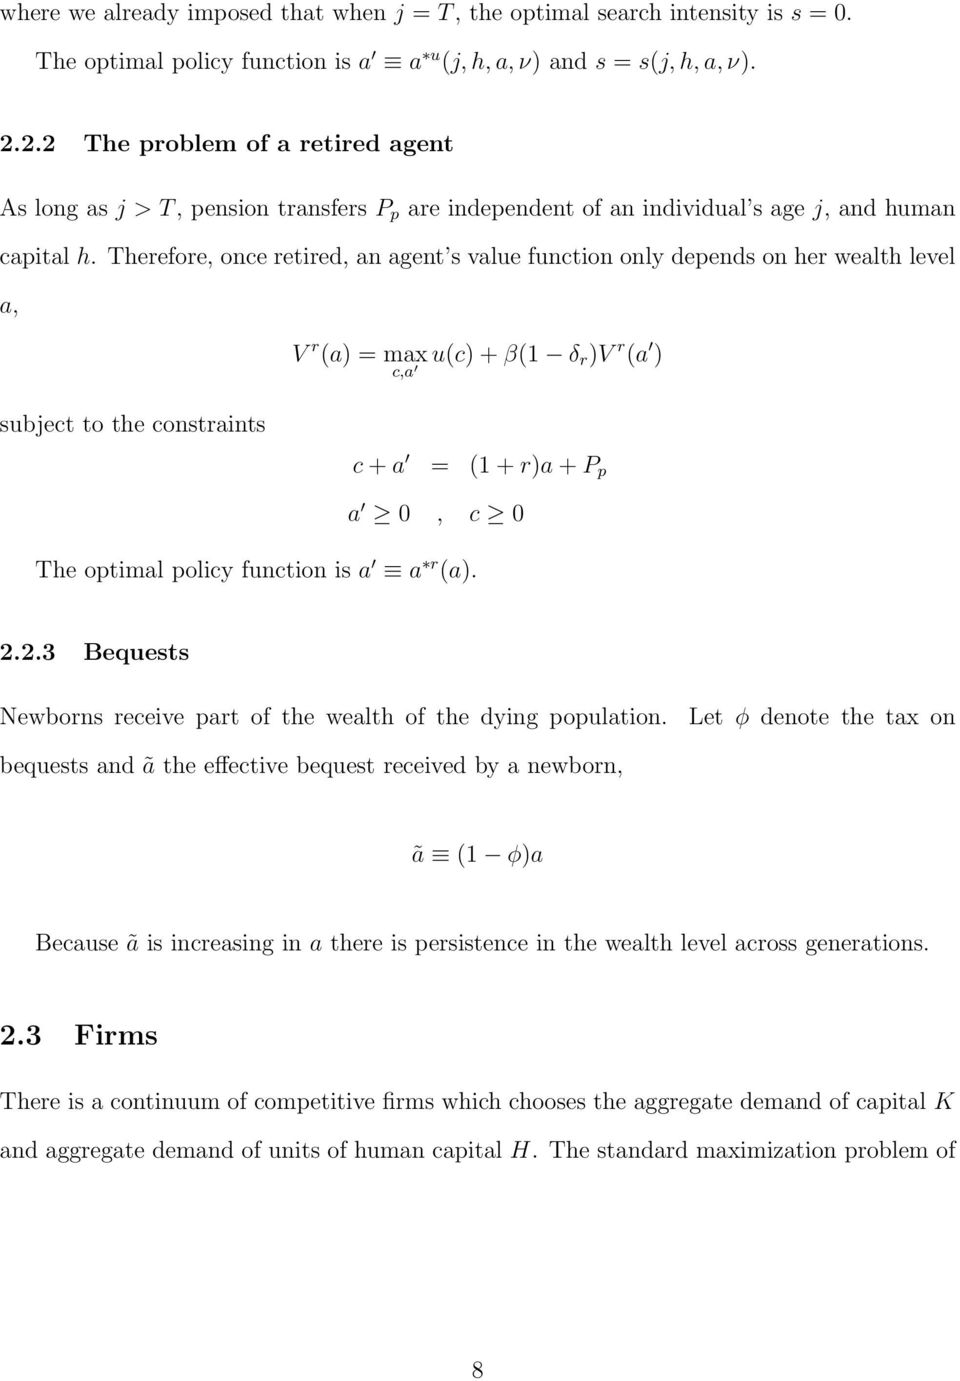 Therefore, once retired, an agent s value function only depends on her wealth level a, subject to the constraints V r (a) = max c,a u(c) + β(1 δ r )V r (a ) c + a = (1 + r)a + P p a 0, c 0 The